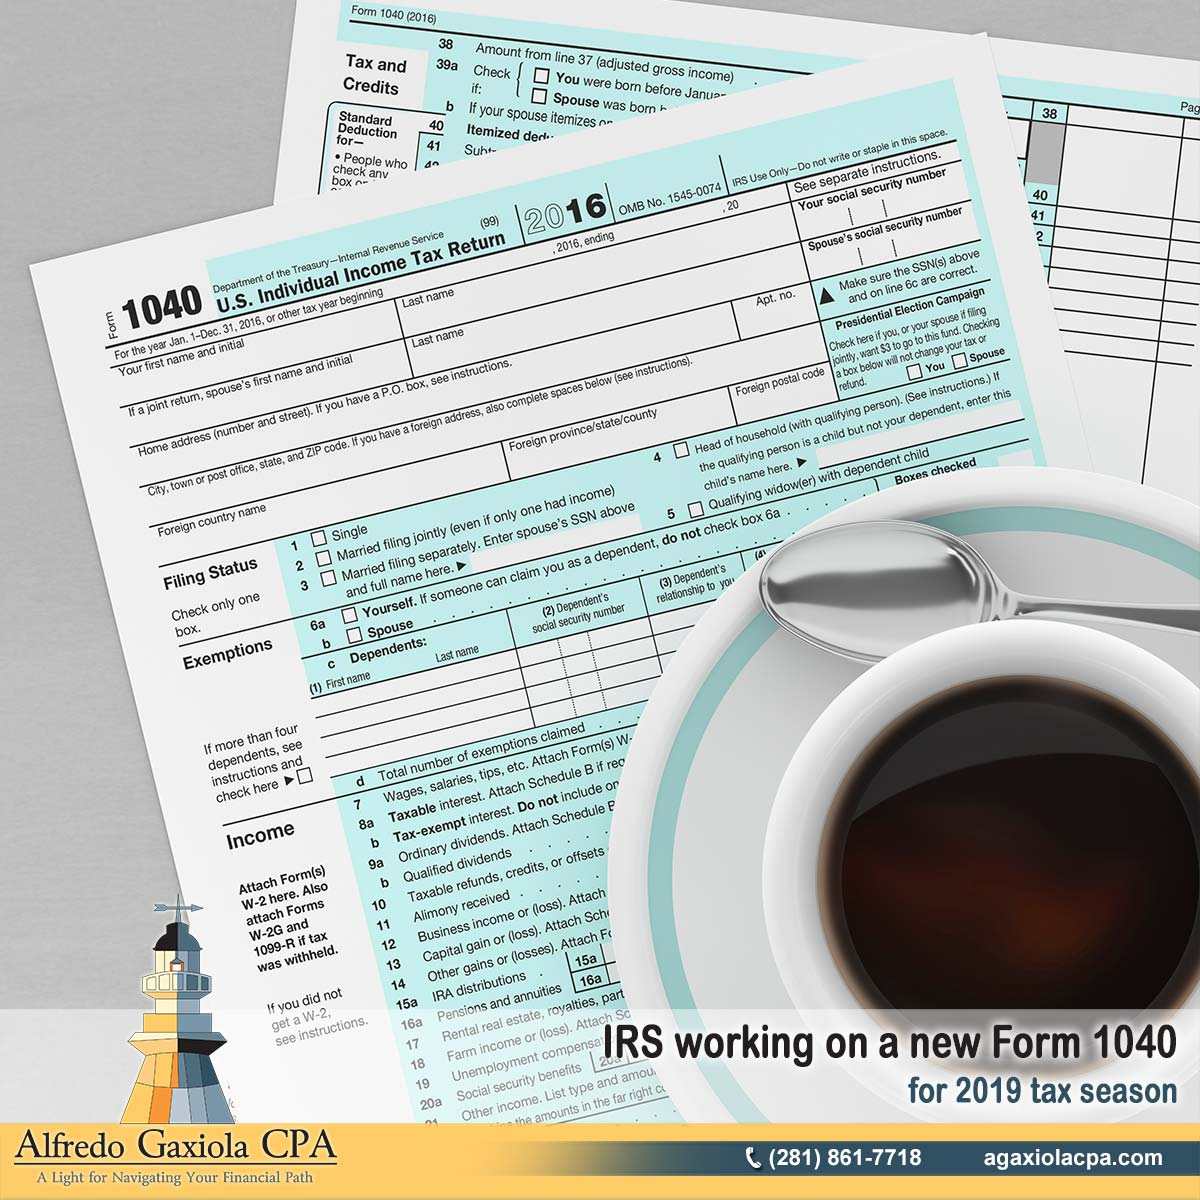 Alfredo Gaxiola Cpa Irs Working On A New Form 1040 For 2019 Tax